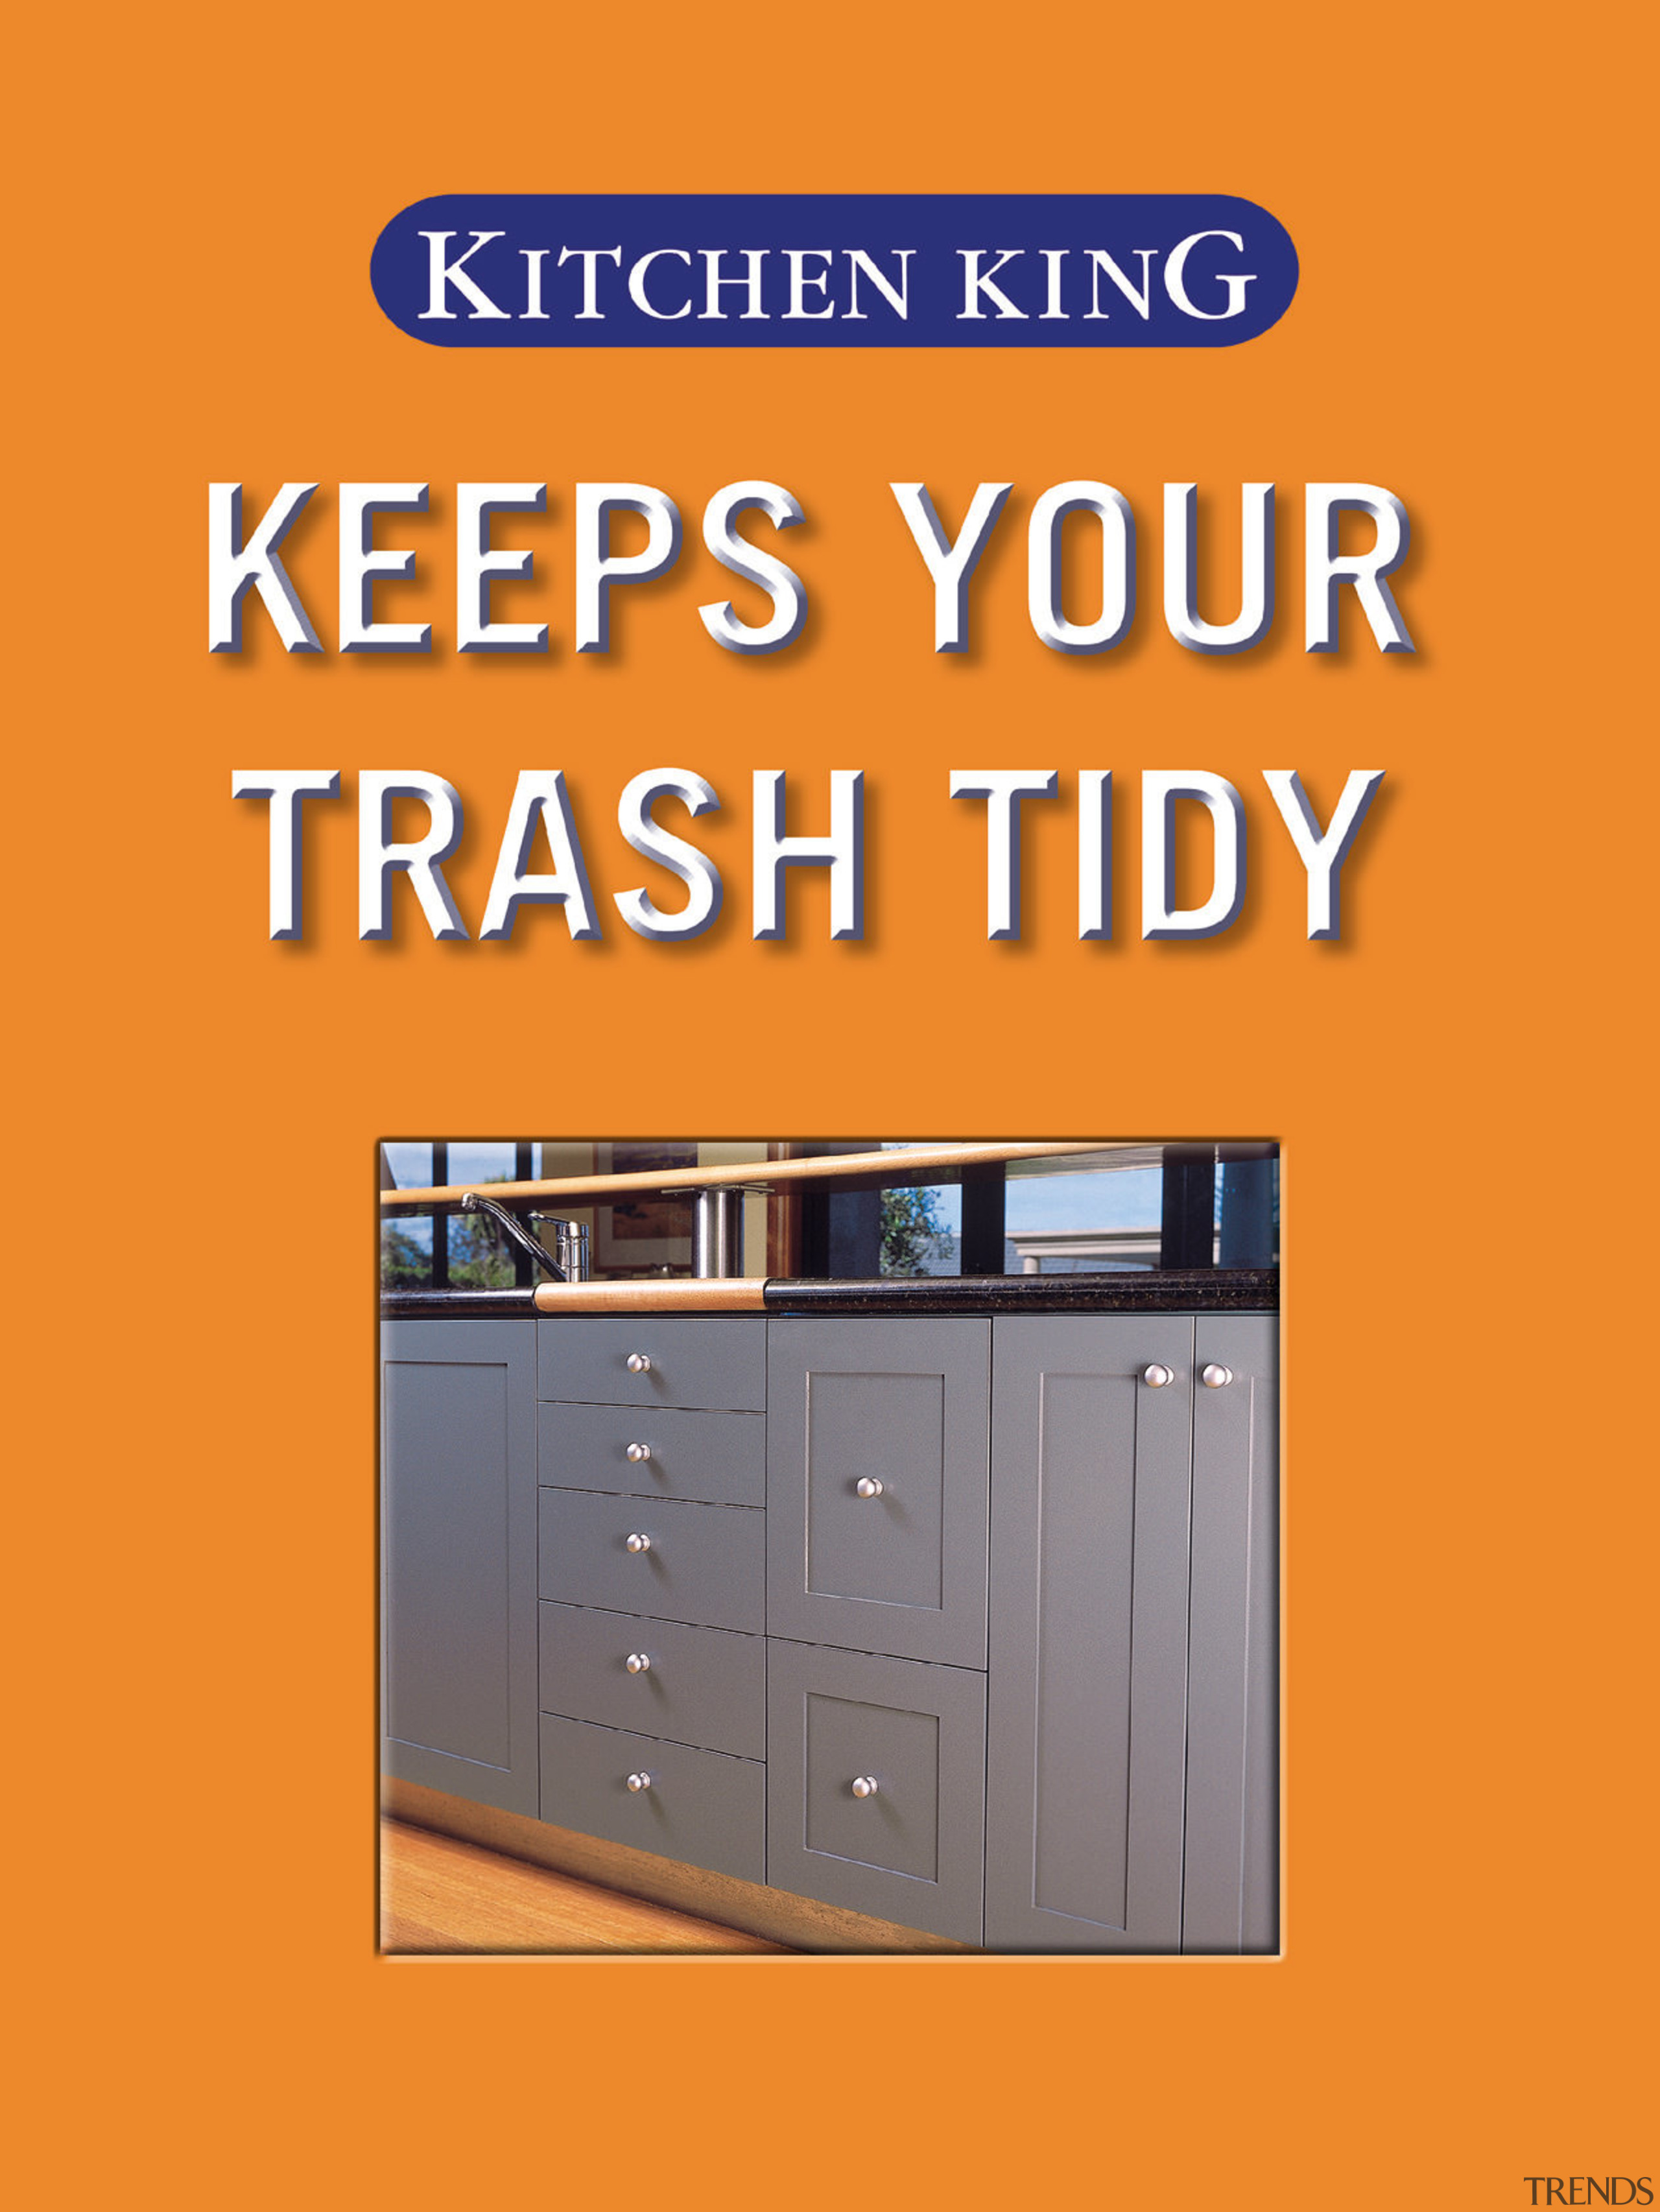 A view of the waste disposal drawer. - font, furniture, line, product, text, orange